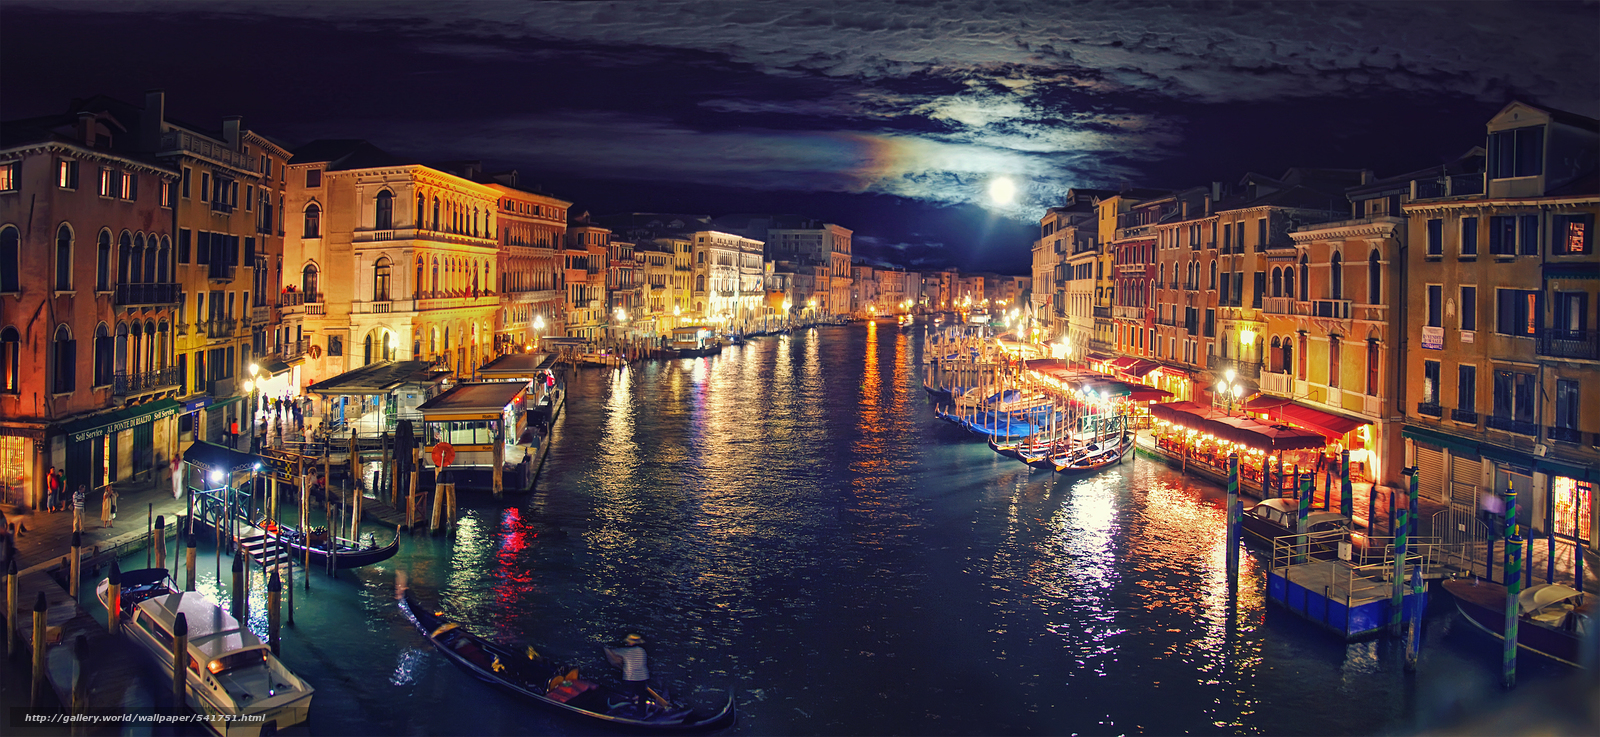 Download wallpaper Italy, Venice, Grand Canal, night free desktop